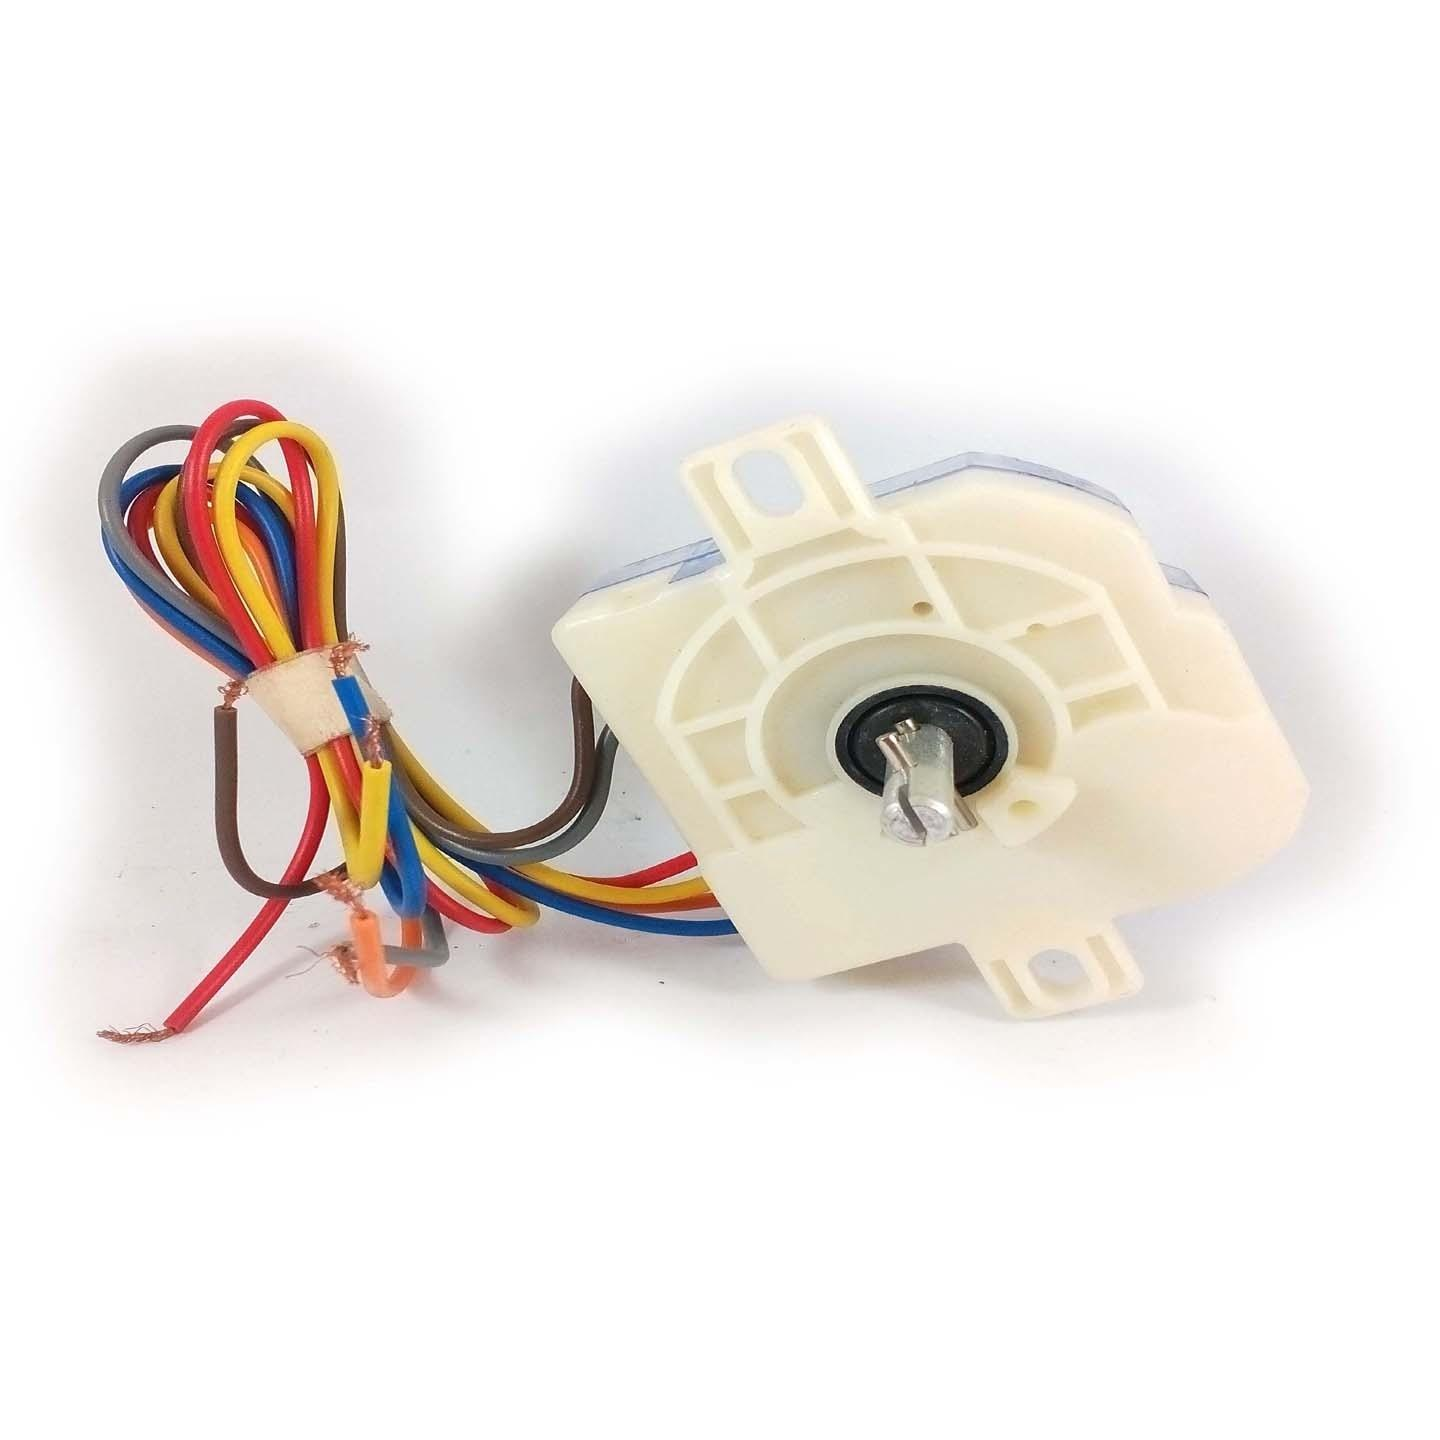 Washer Dryer Accessories For Sale Parts Prices Lg Washing Machine Motor Wiring Diagram Timer Control Non Slanting 6 Wires